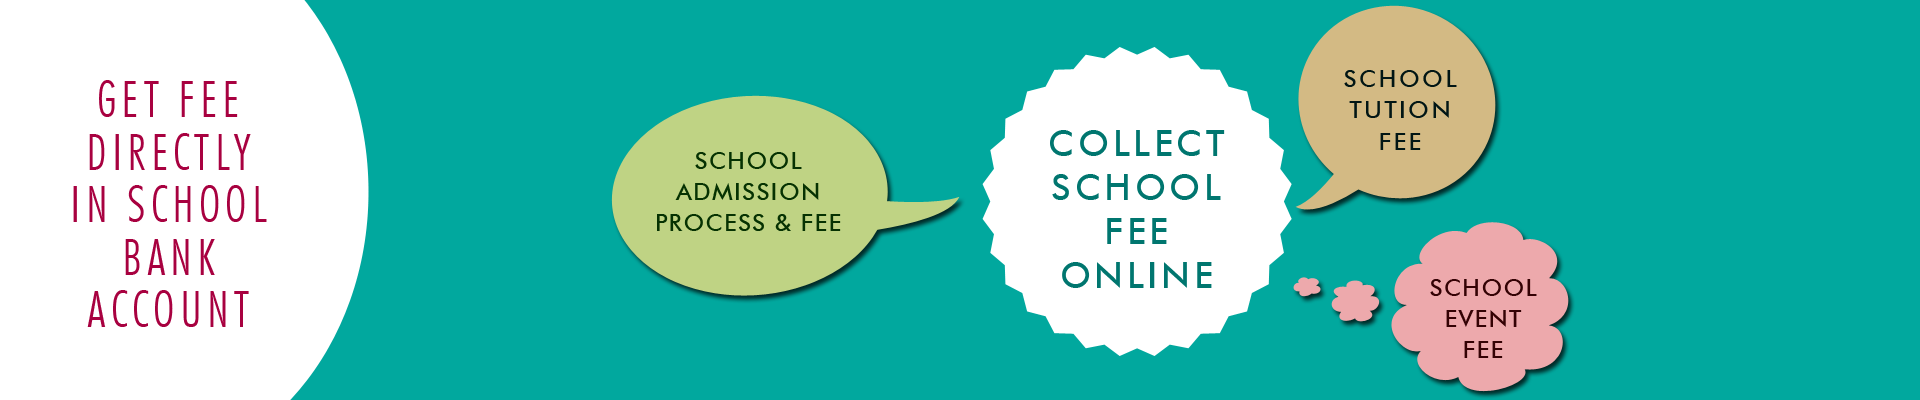 collect-school-fee-online-website-screenshort